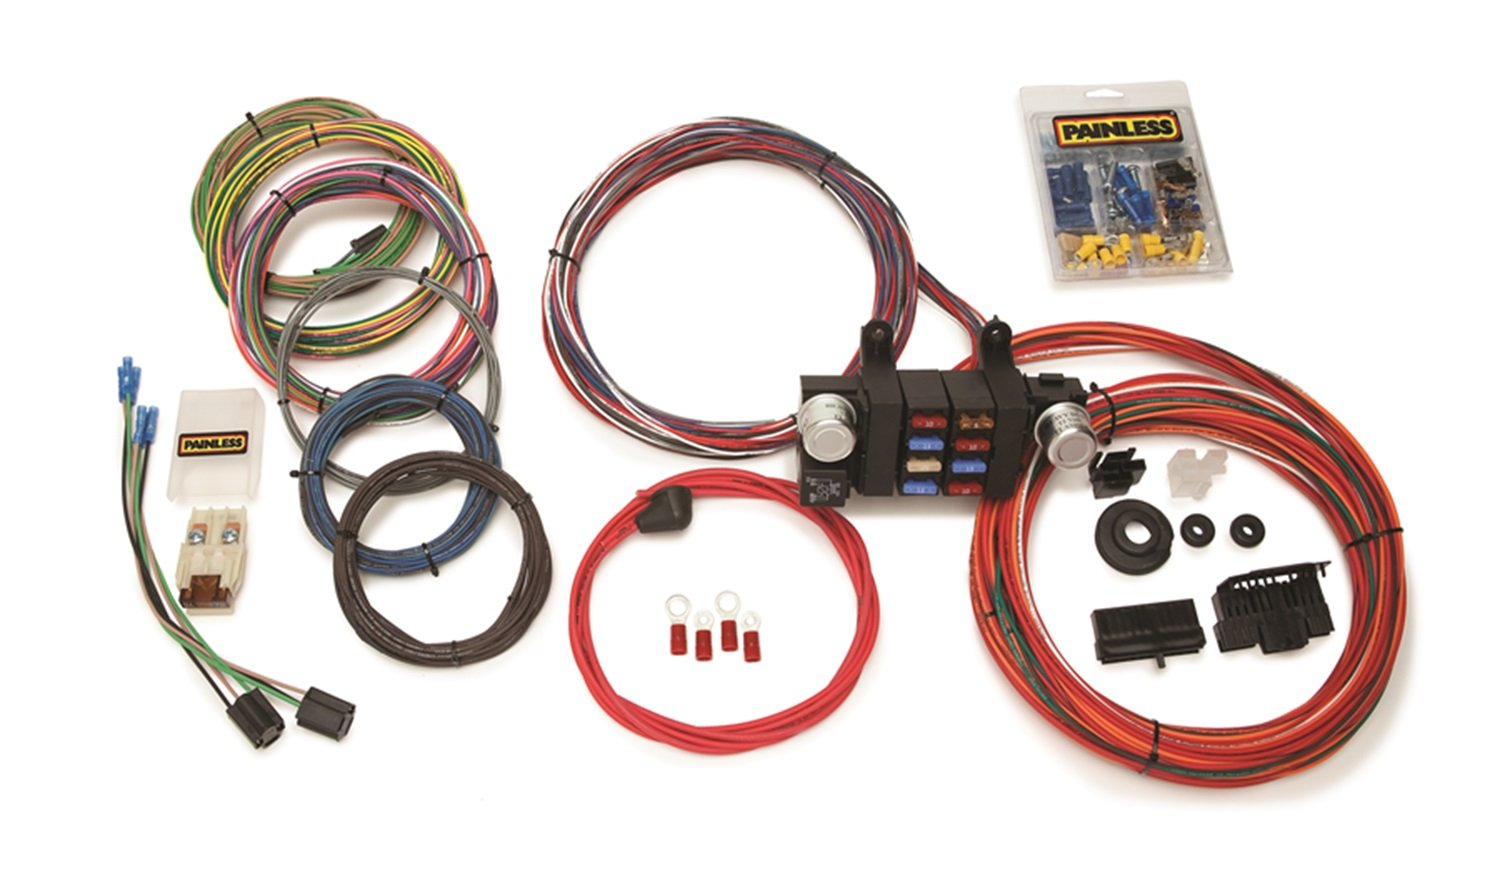 714FypRjpJL._SL1500_ amazon com painless wiring 10308 8 circuit mod t bucket h universal 12 circuit wiring harness at gsmx.co